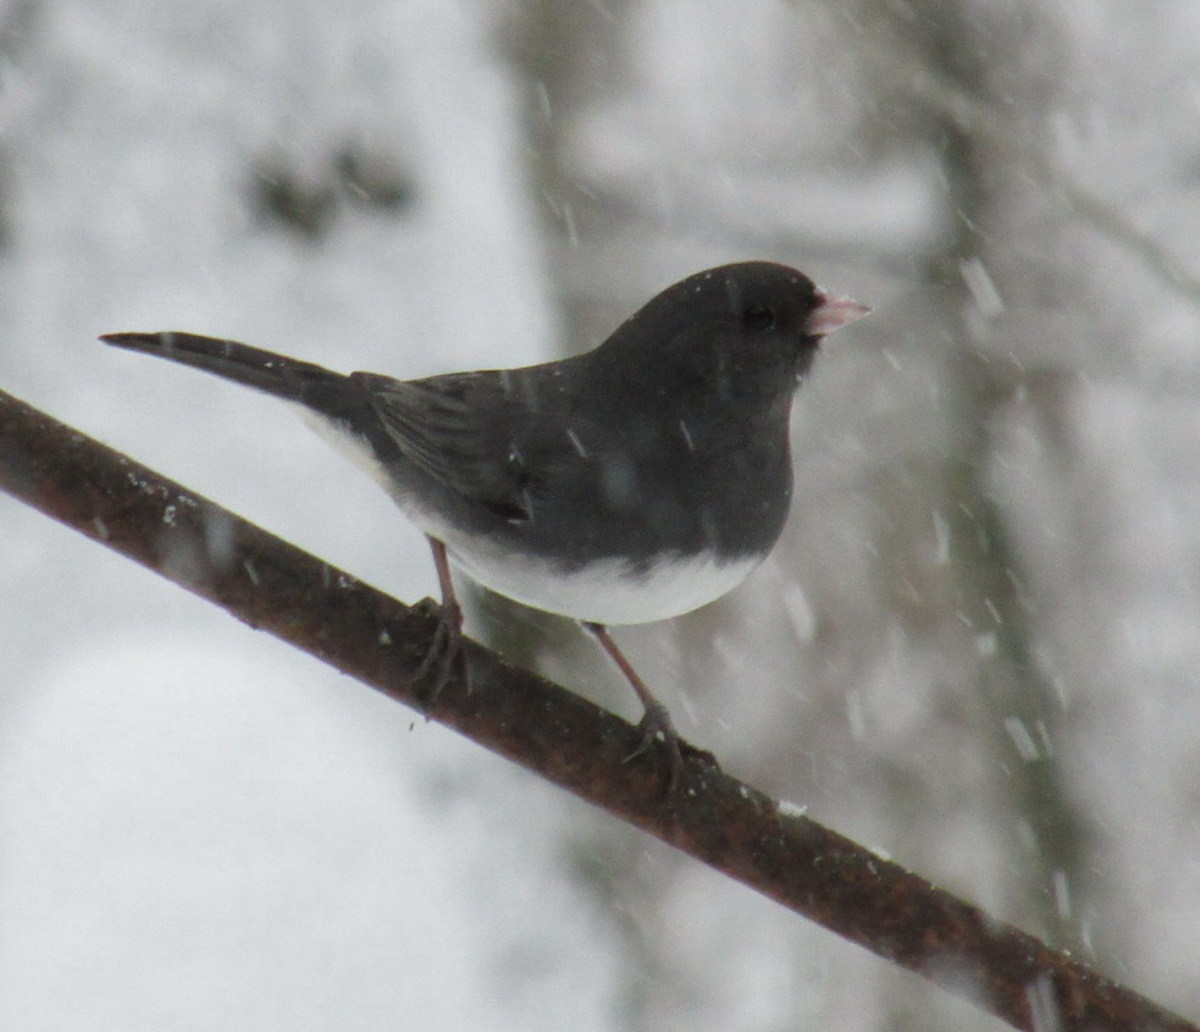 Here in Upstate New York, my juncos ( Junco hyemalis) stay year round.  This hardy little guy doesn't seem to mind the cold!